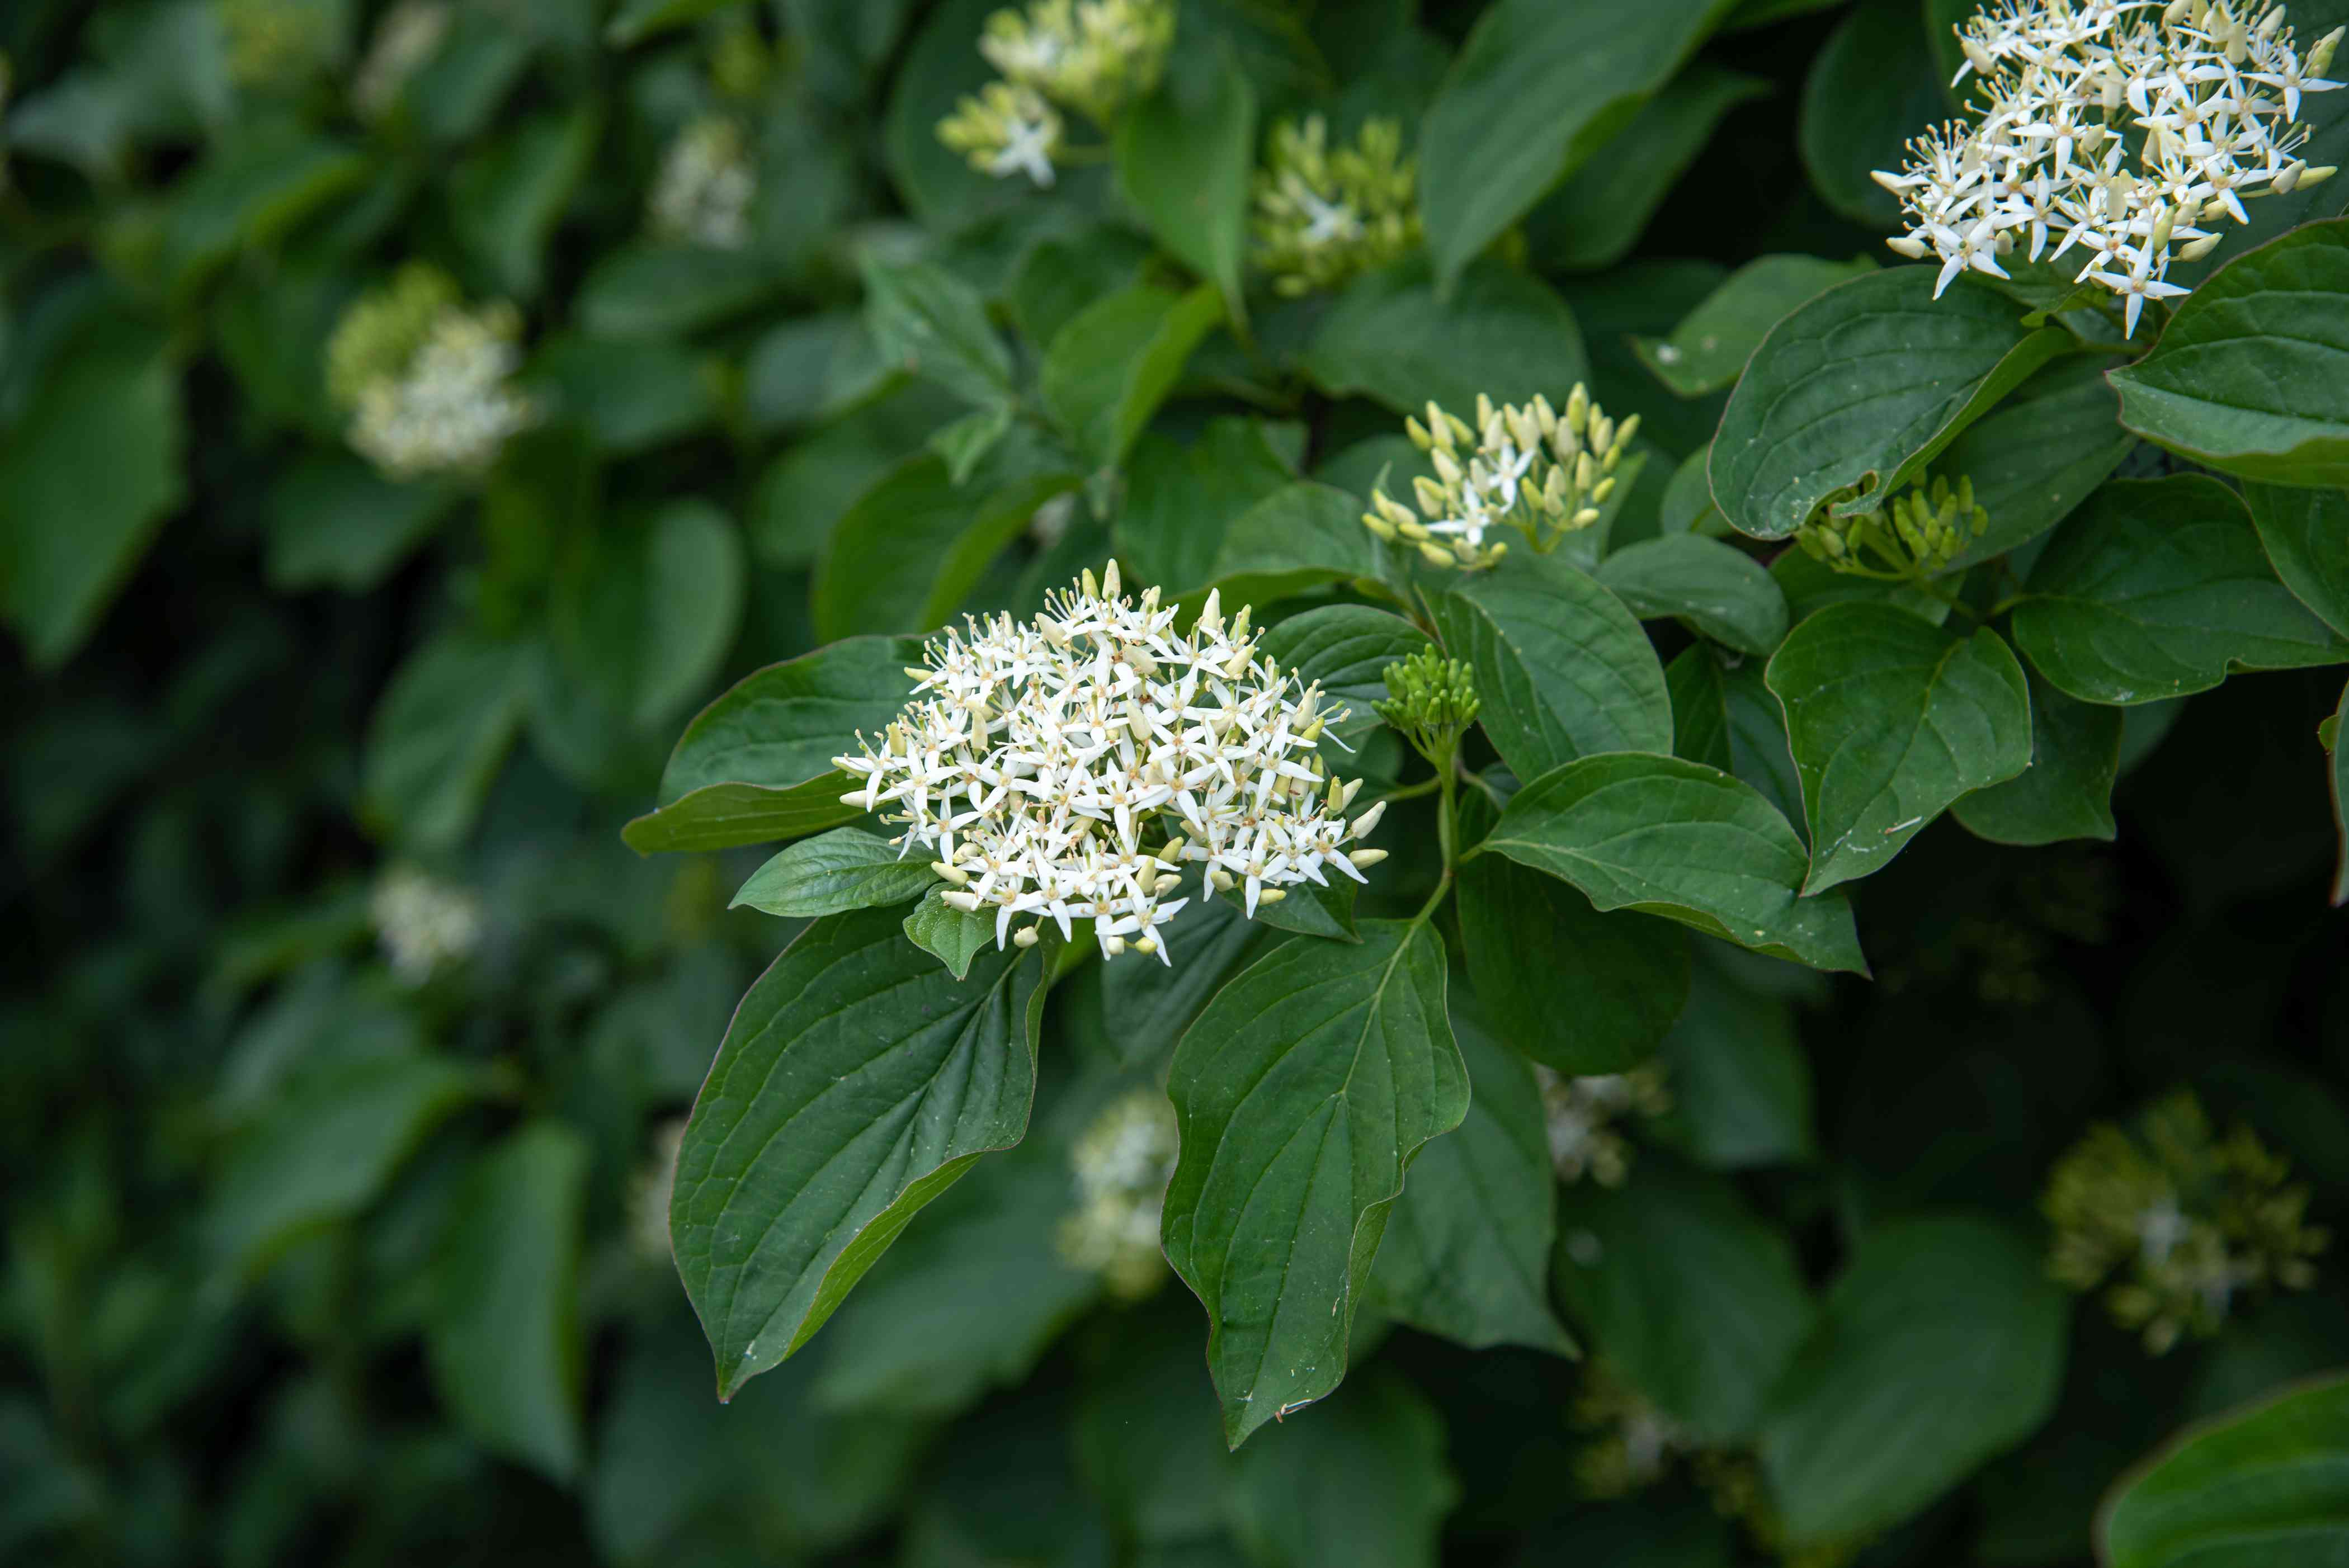 Silky dogwood shrub branch with large leaves and cluster of small white flowers closeup